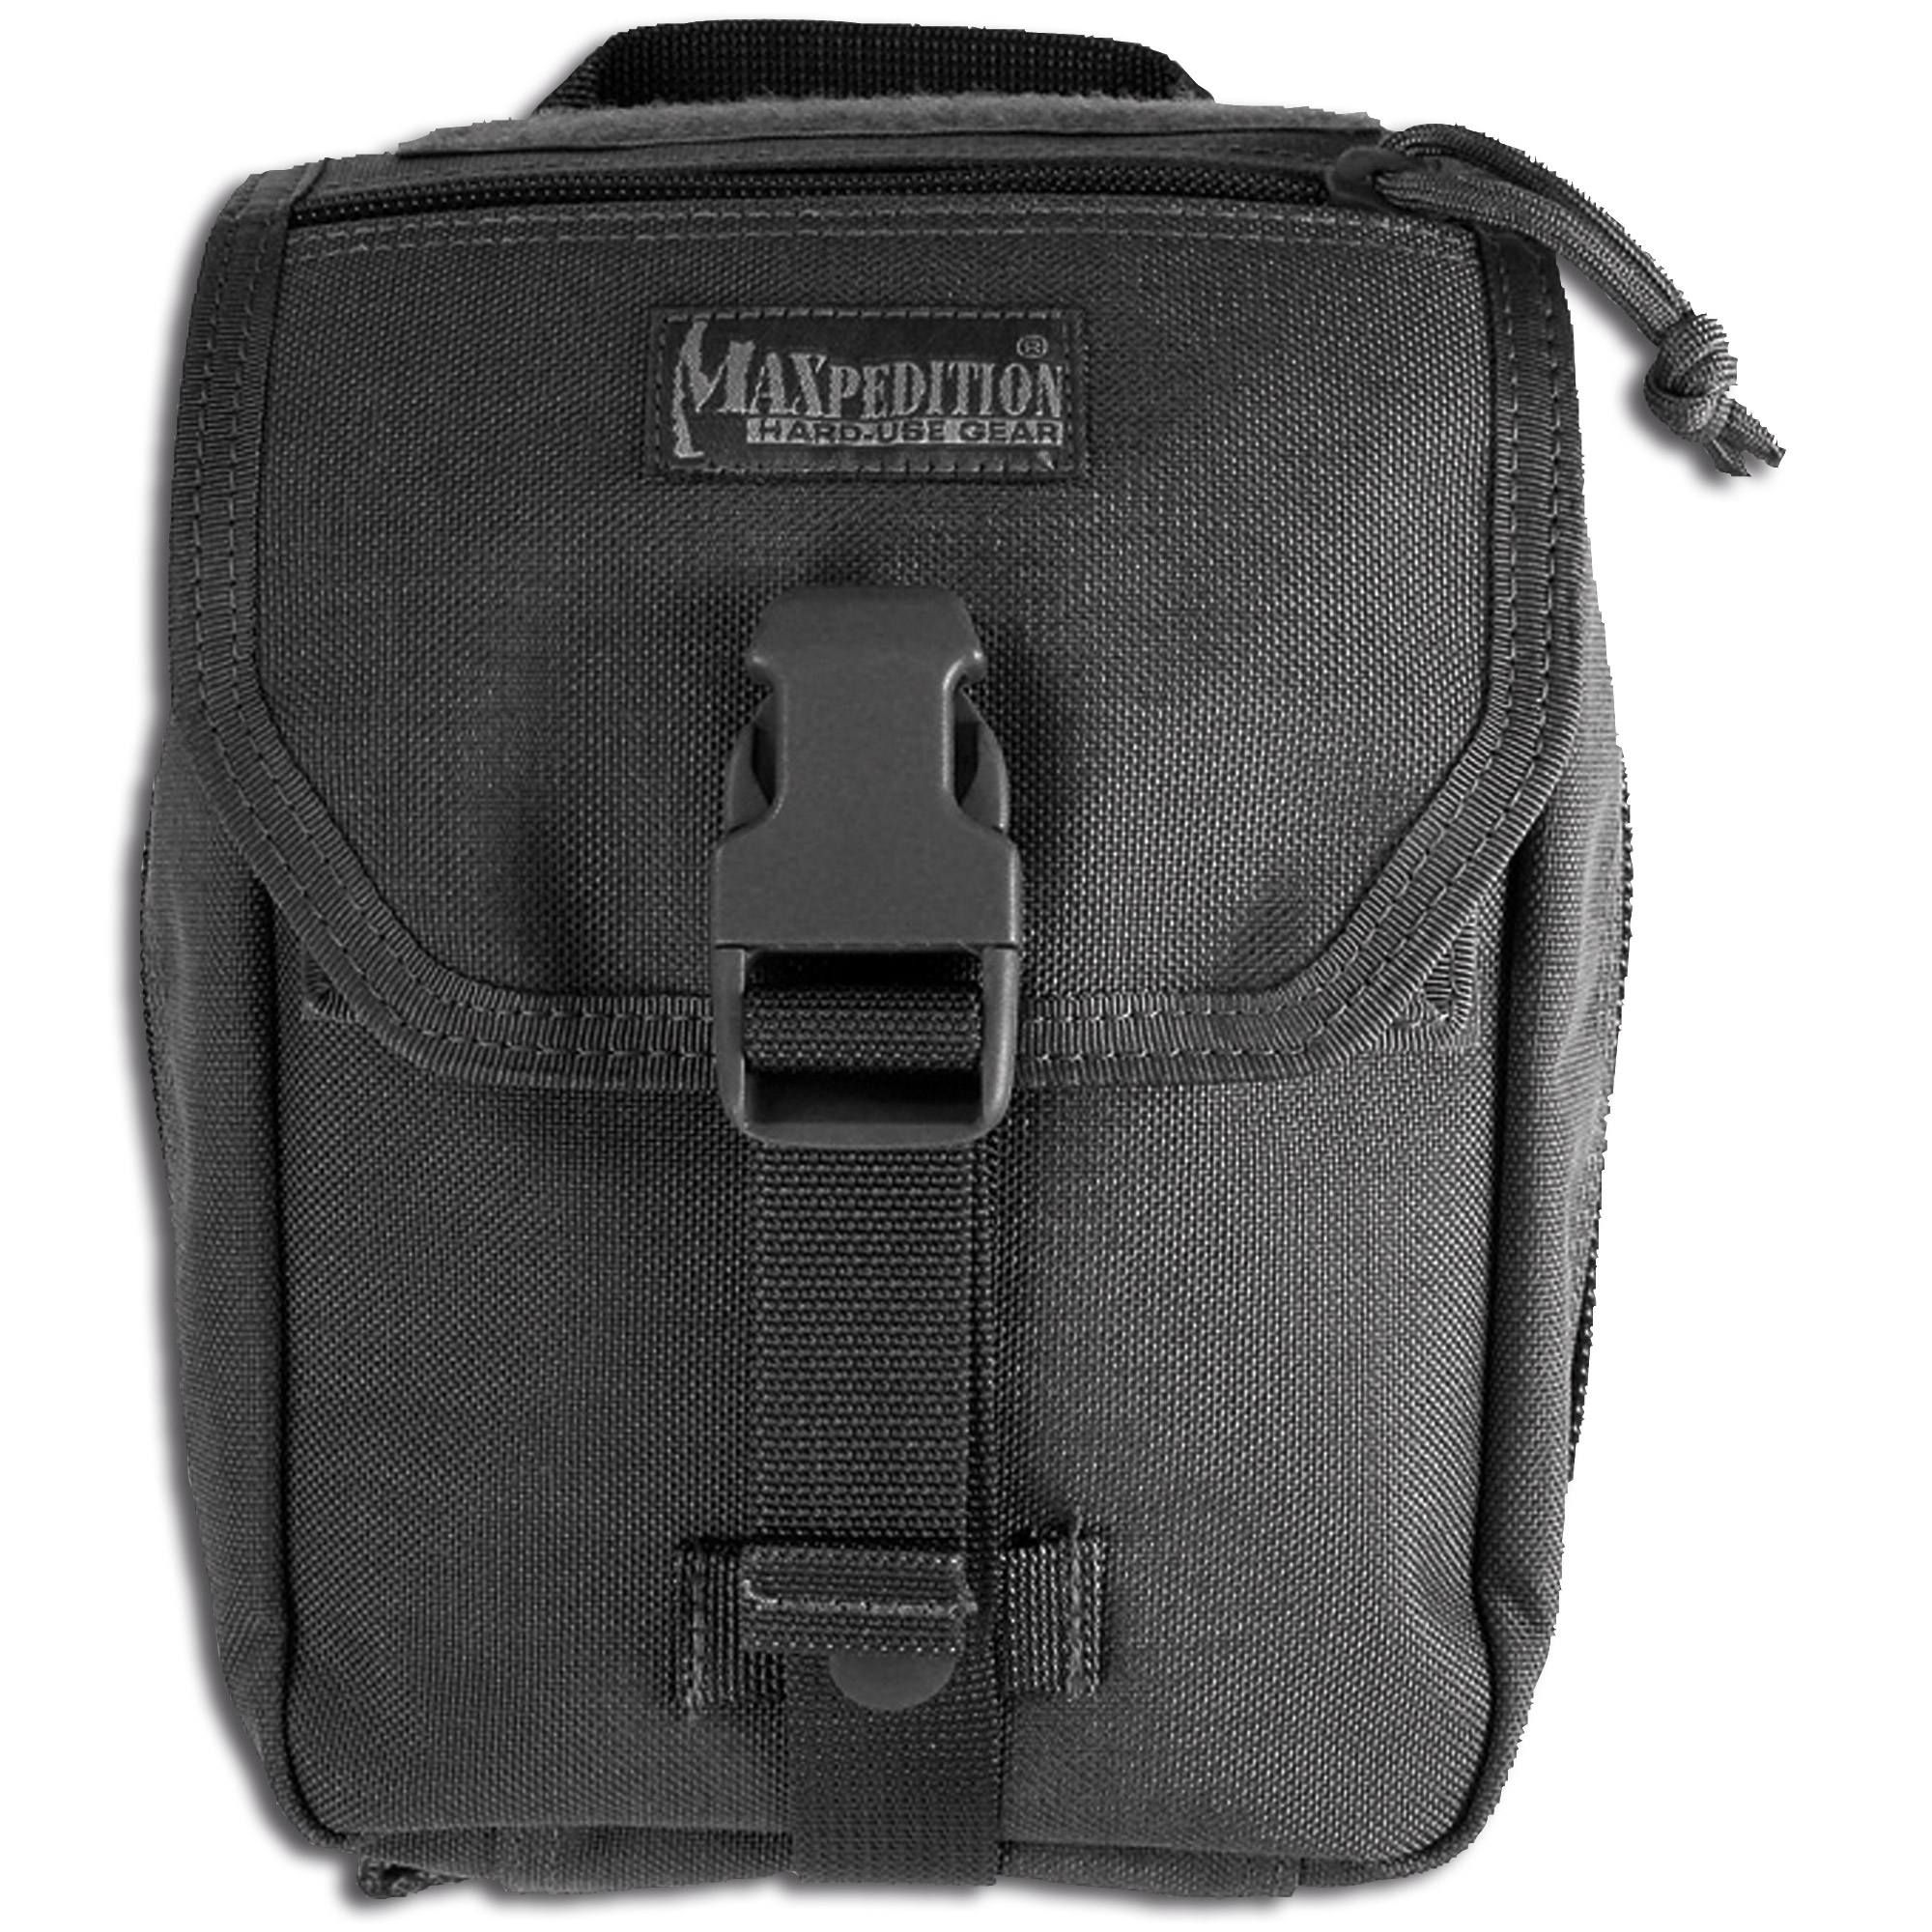 Maxpedition F.I.G.H.T. Medical Pouch schwarz